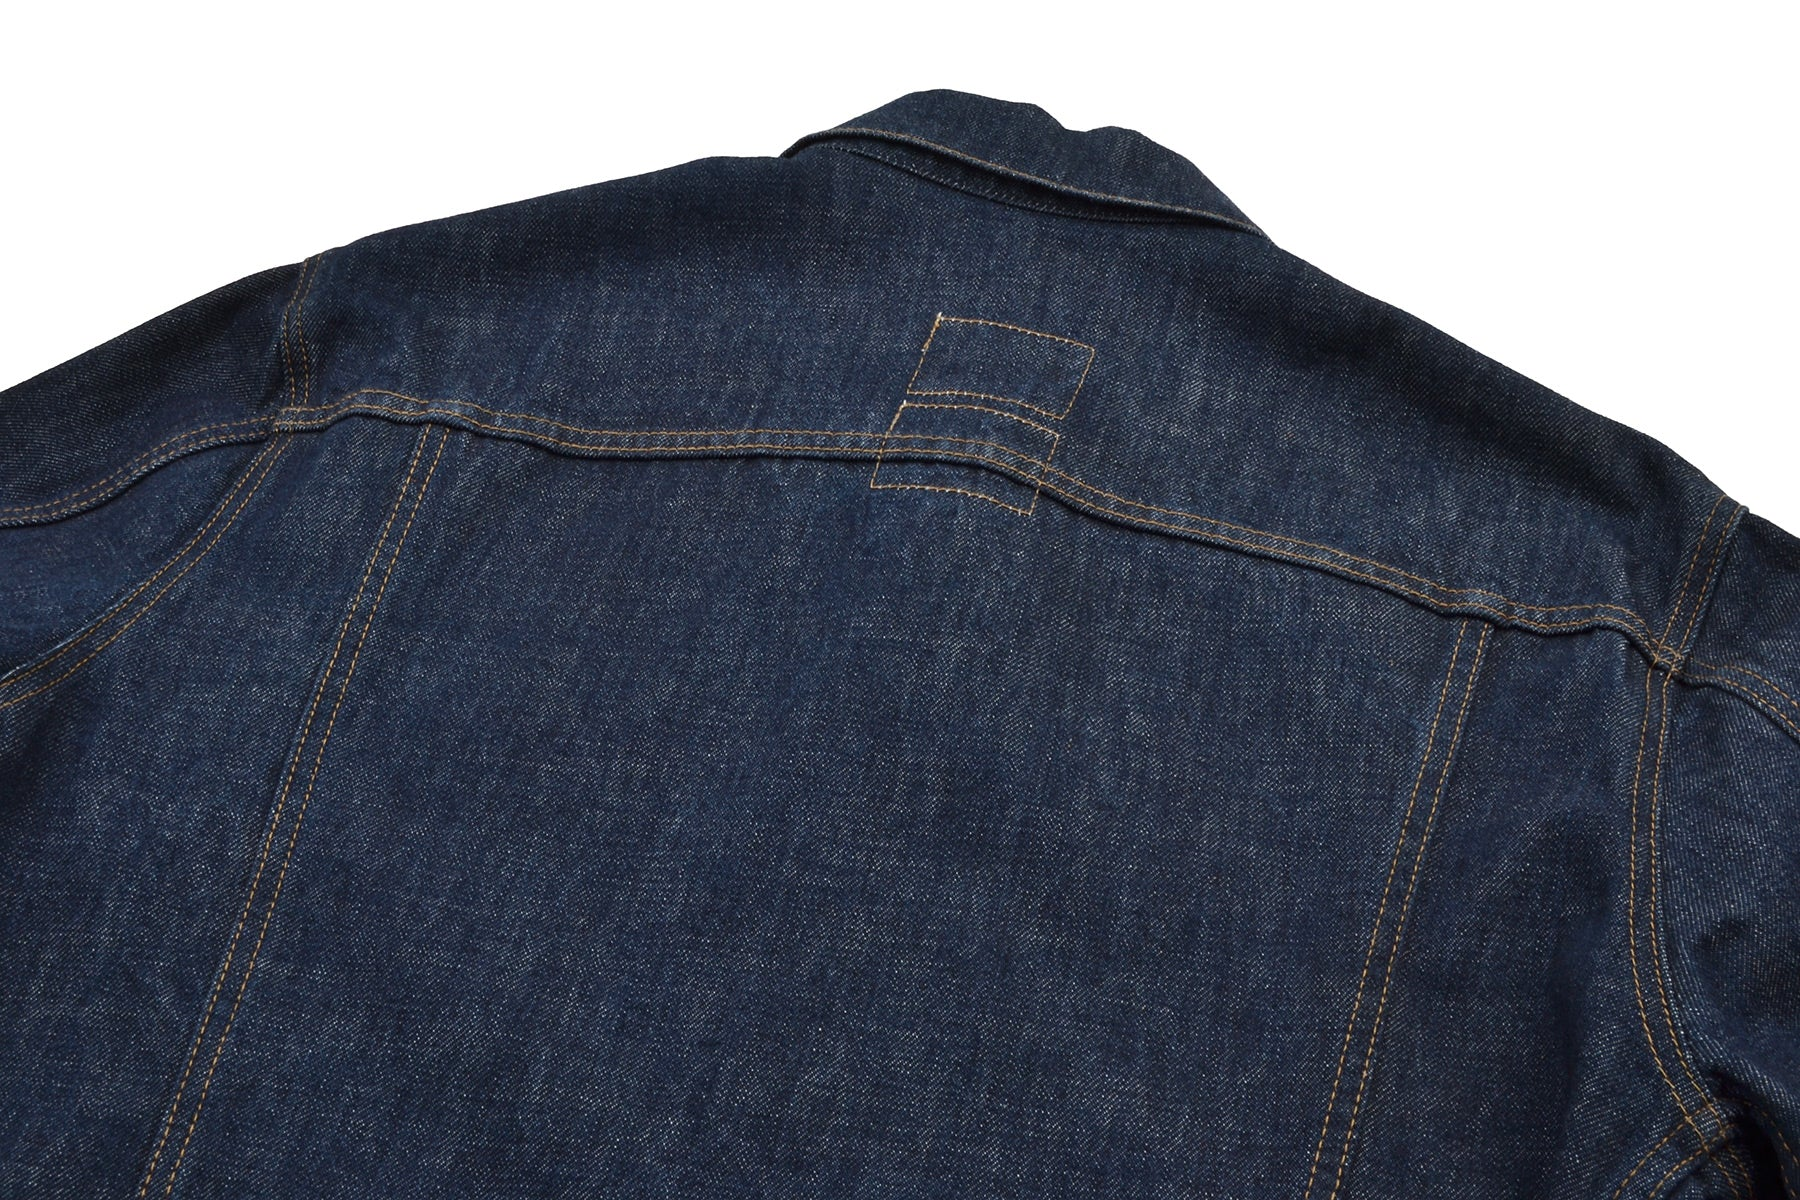 2003 S/S SLIM 2 POCKET JACKET IN CLASSIC DENIM